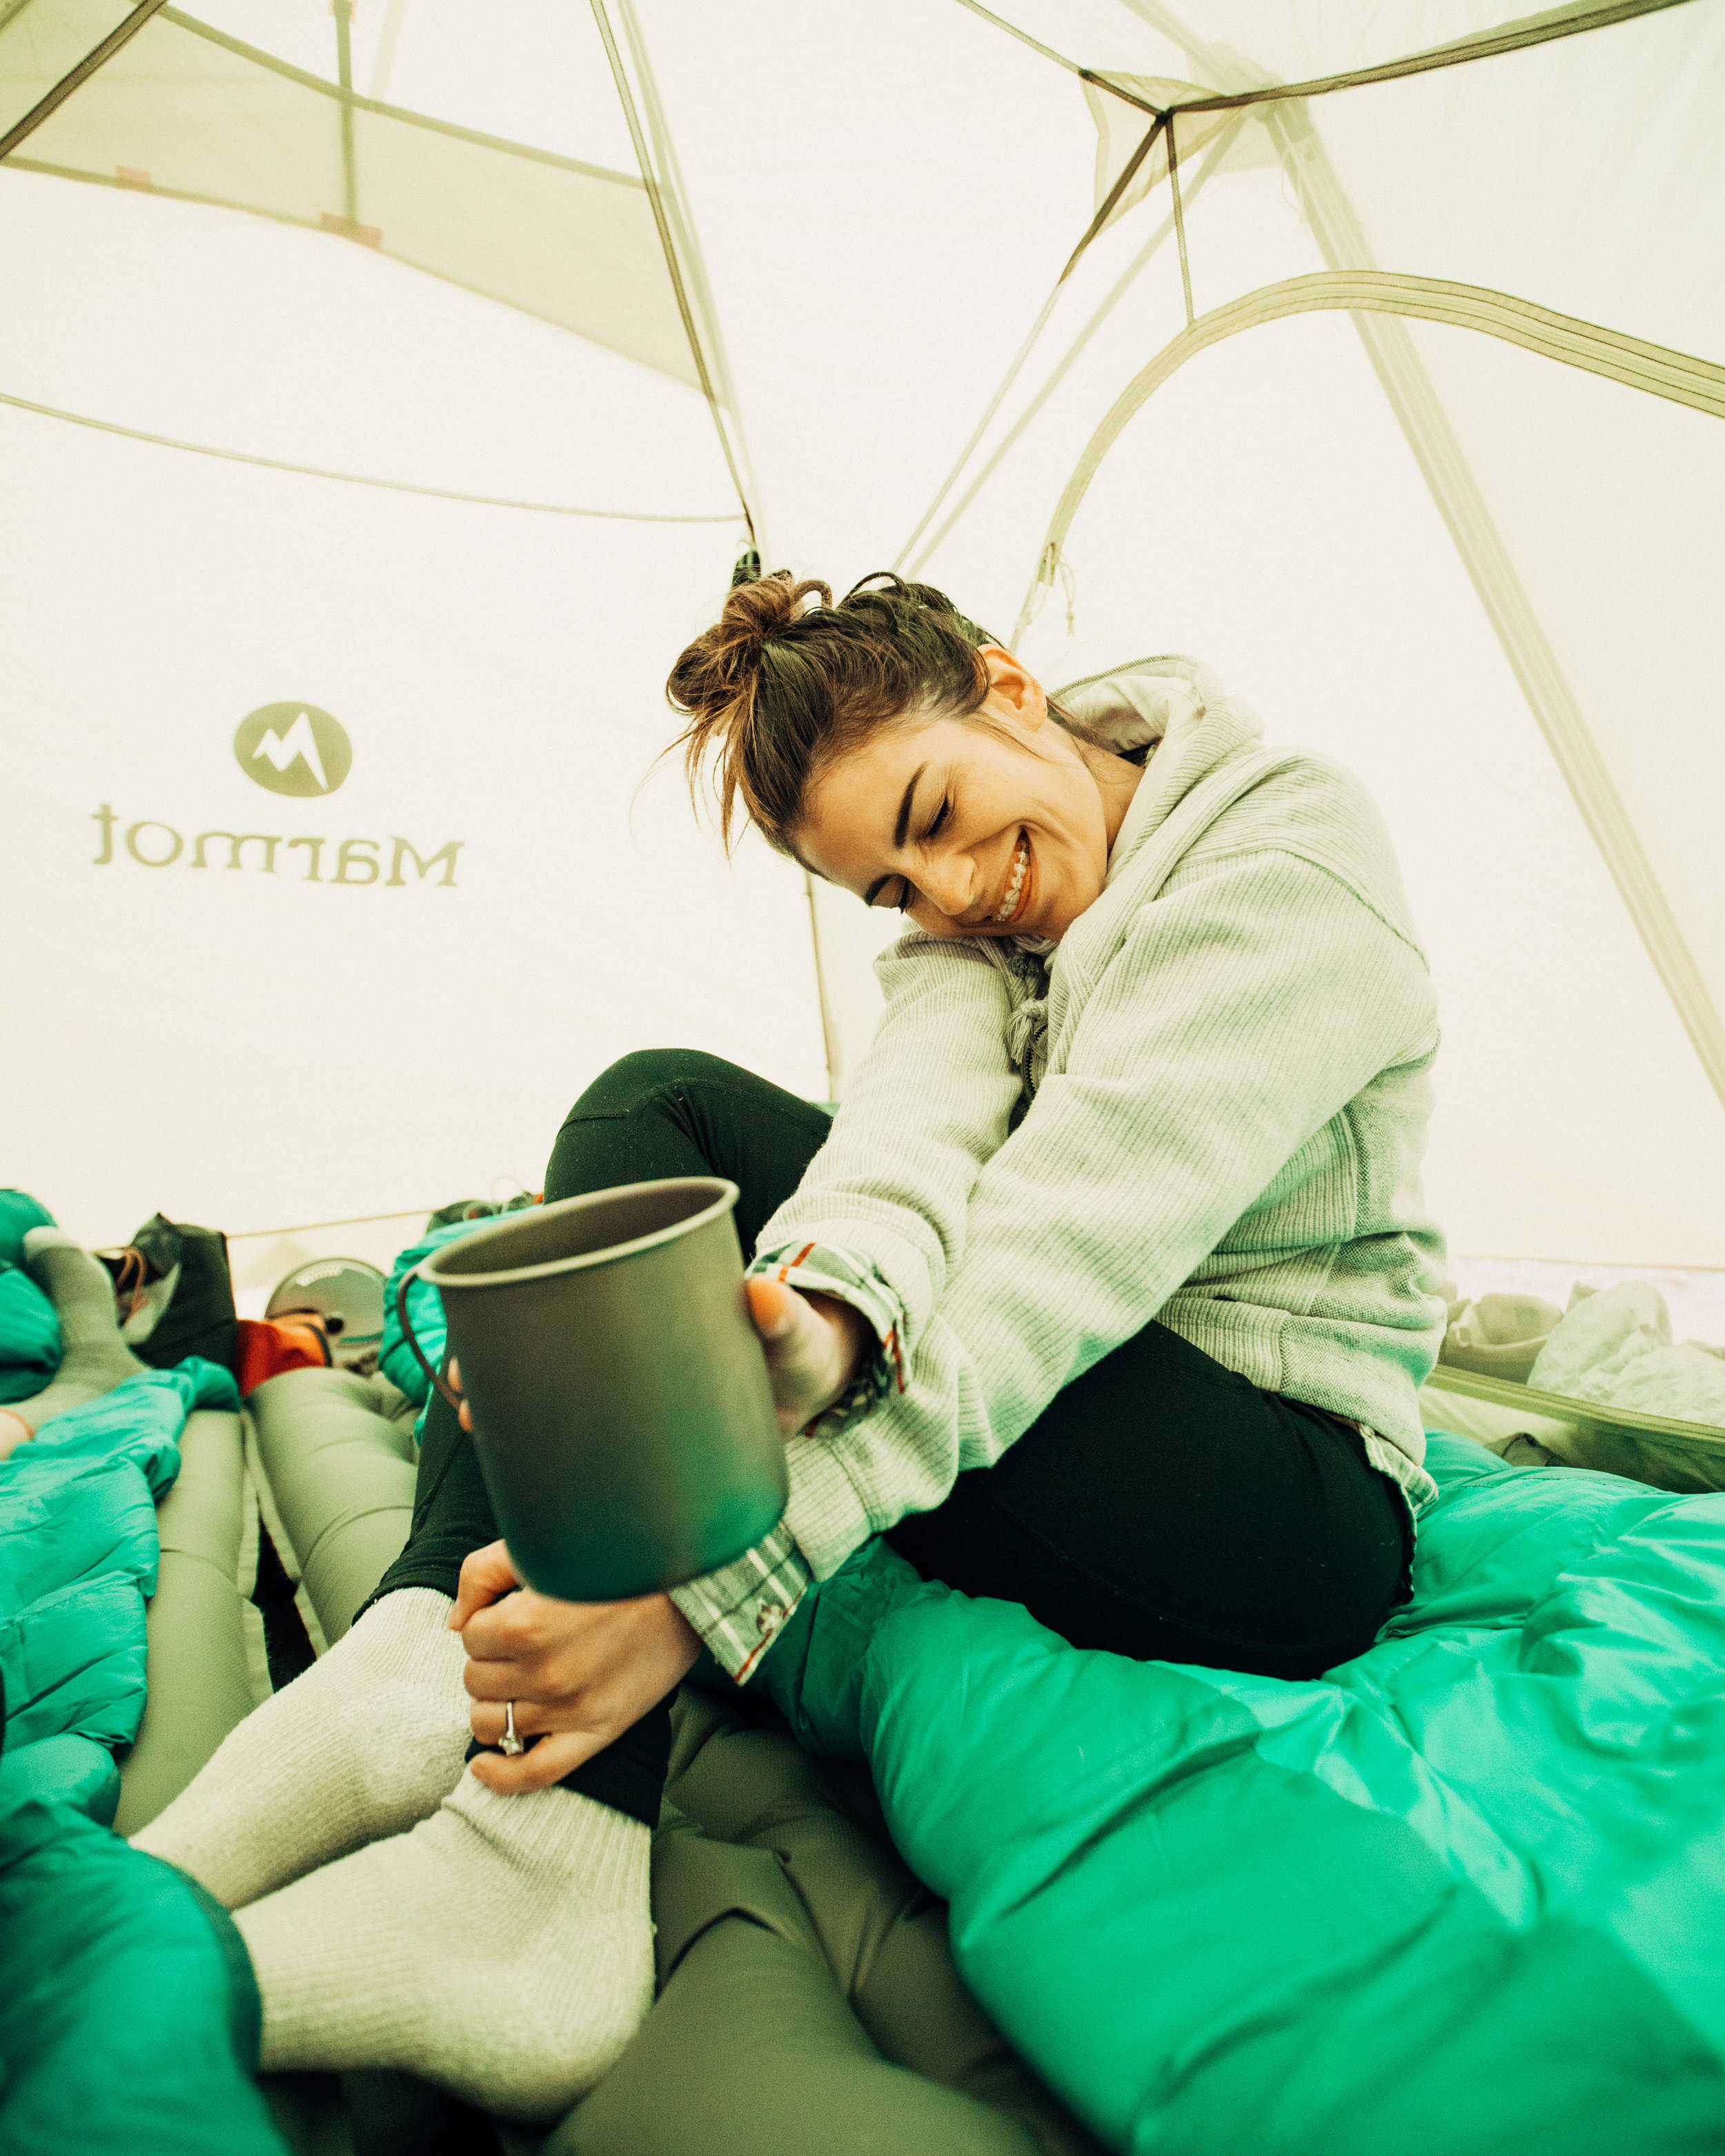 Avoiding the rain and enjoying a hot cup of coffee in our tent!